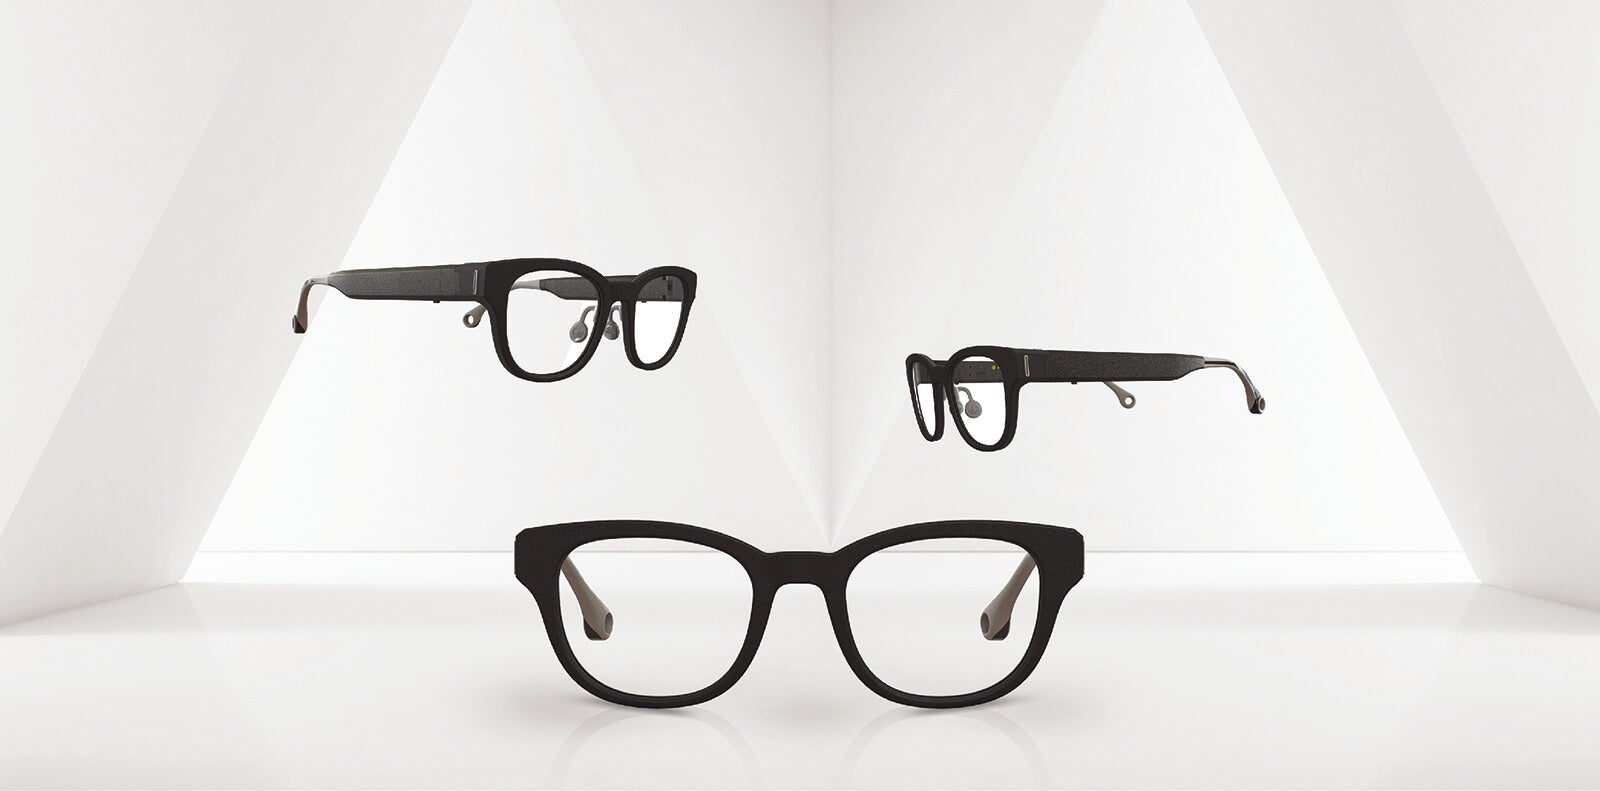 3 different side views of Solos argon glasses